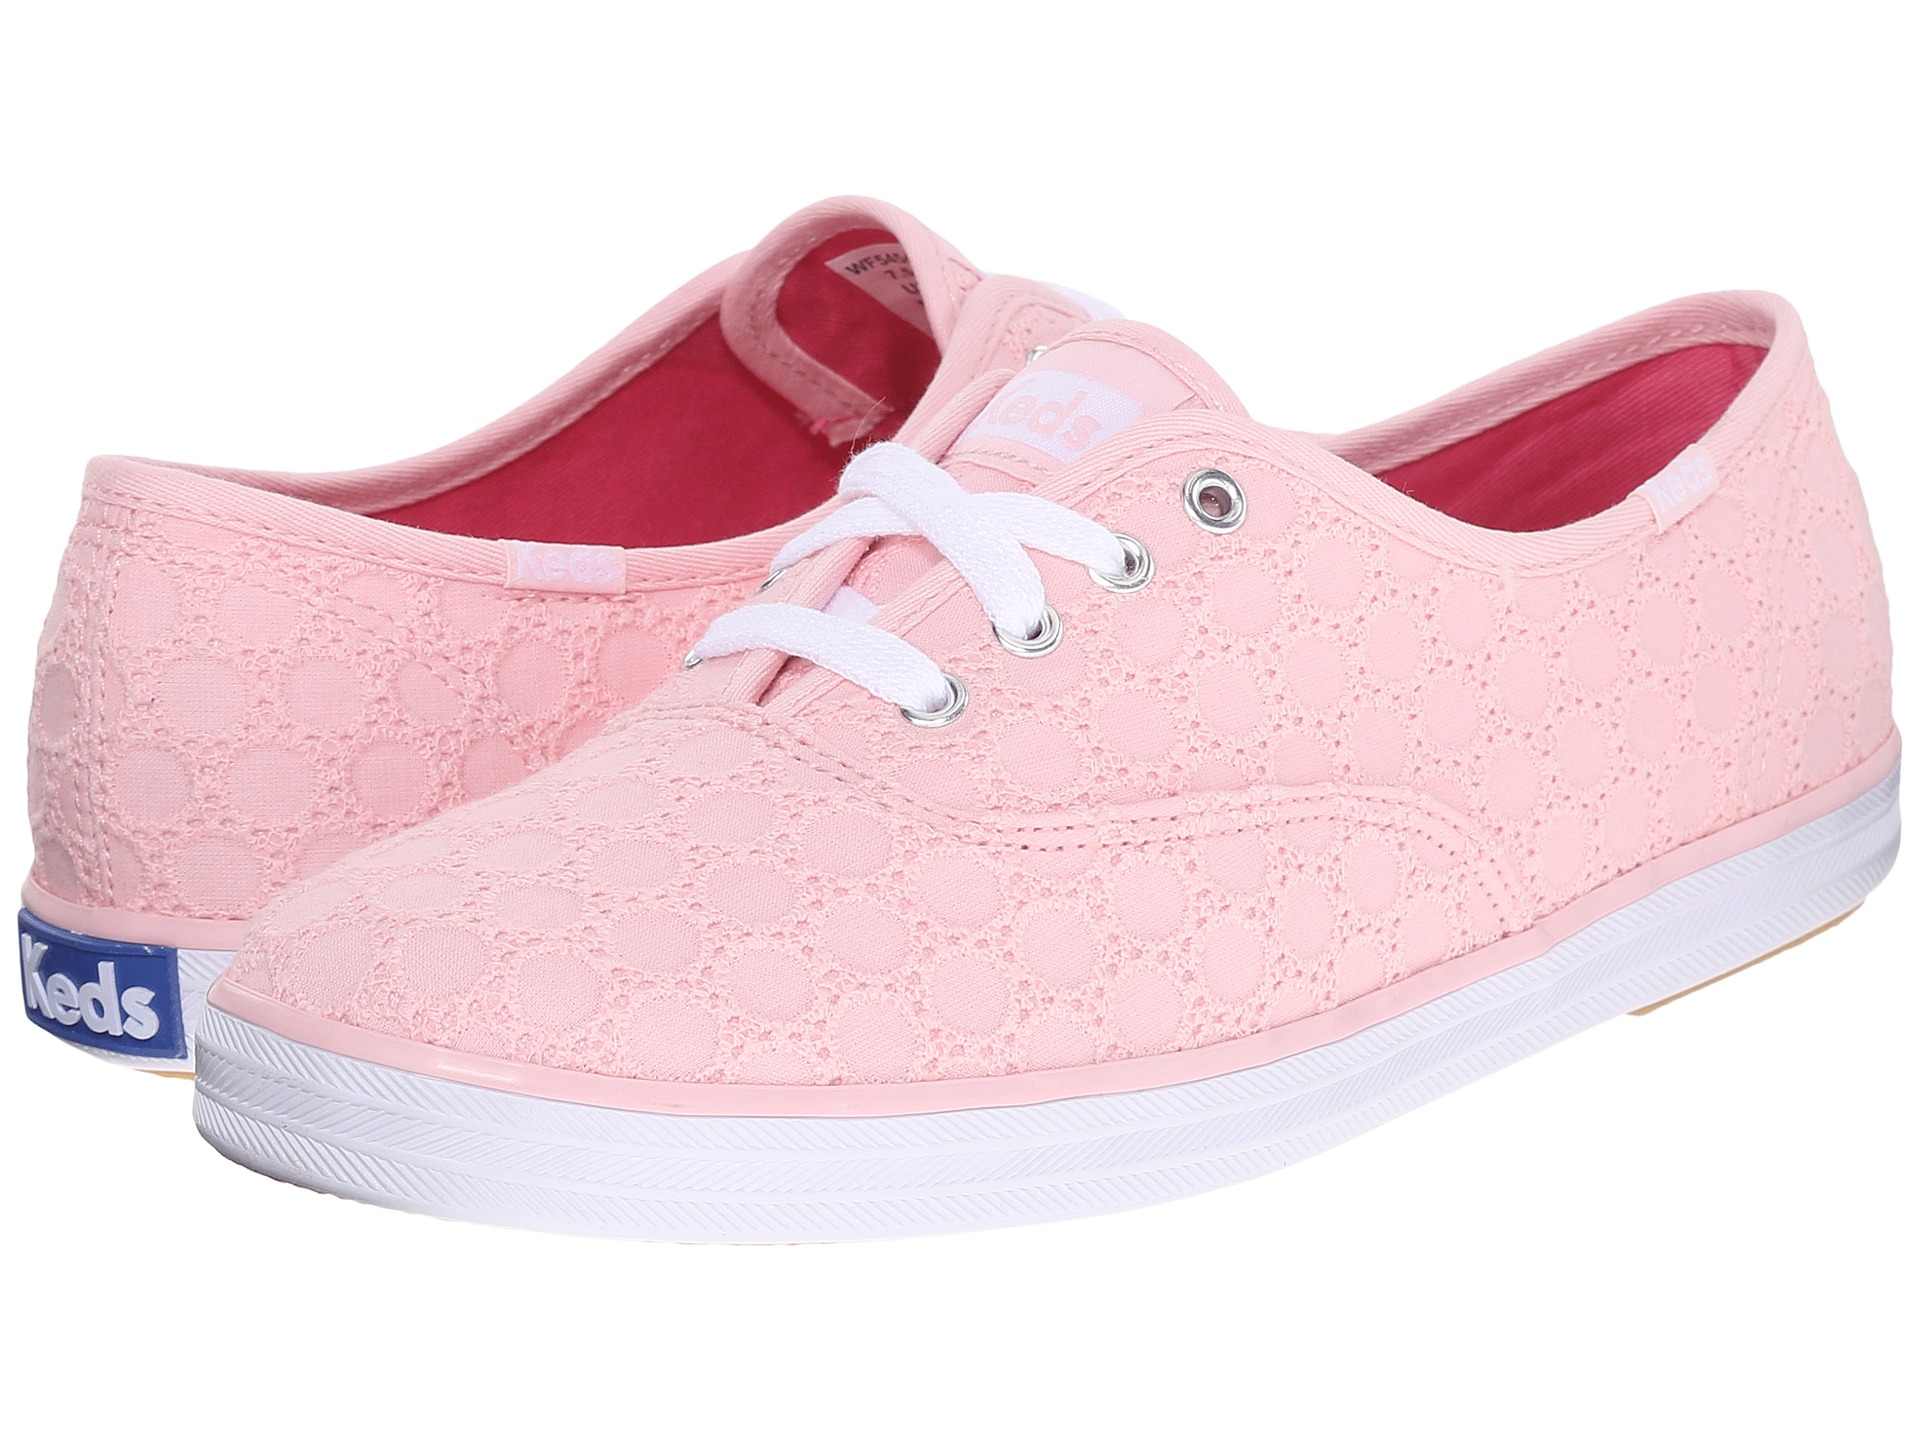 keds champion pink eyelet shoes